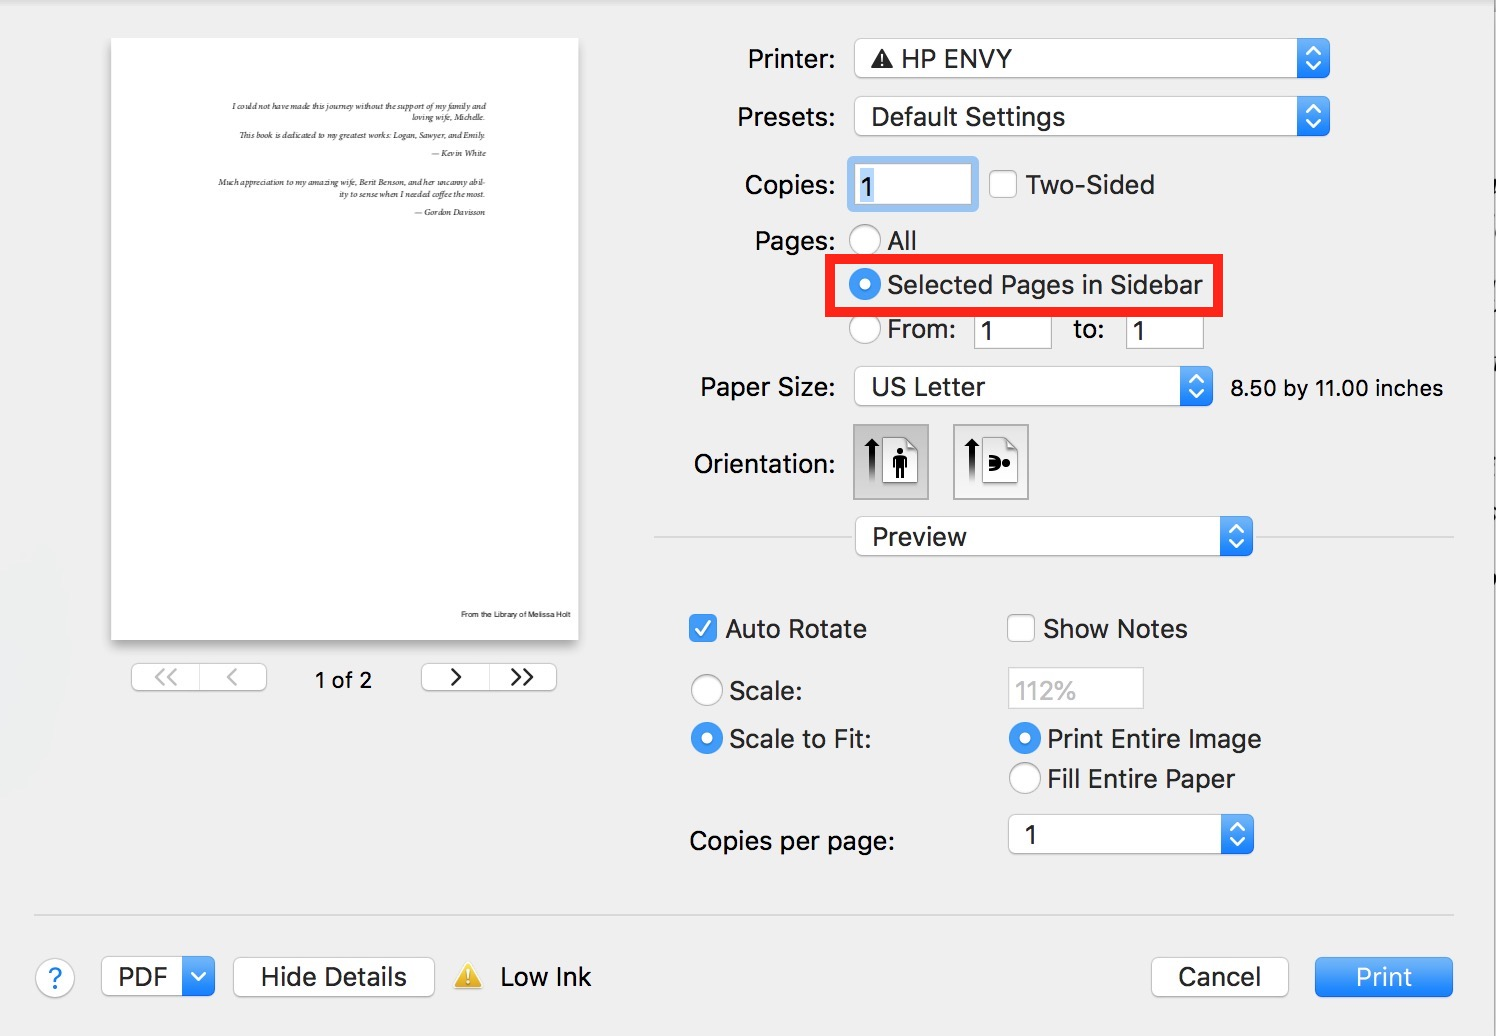 macOS: How to Print Only Selected Pages from Preview - The